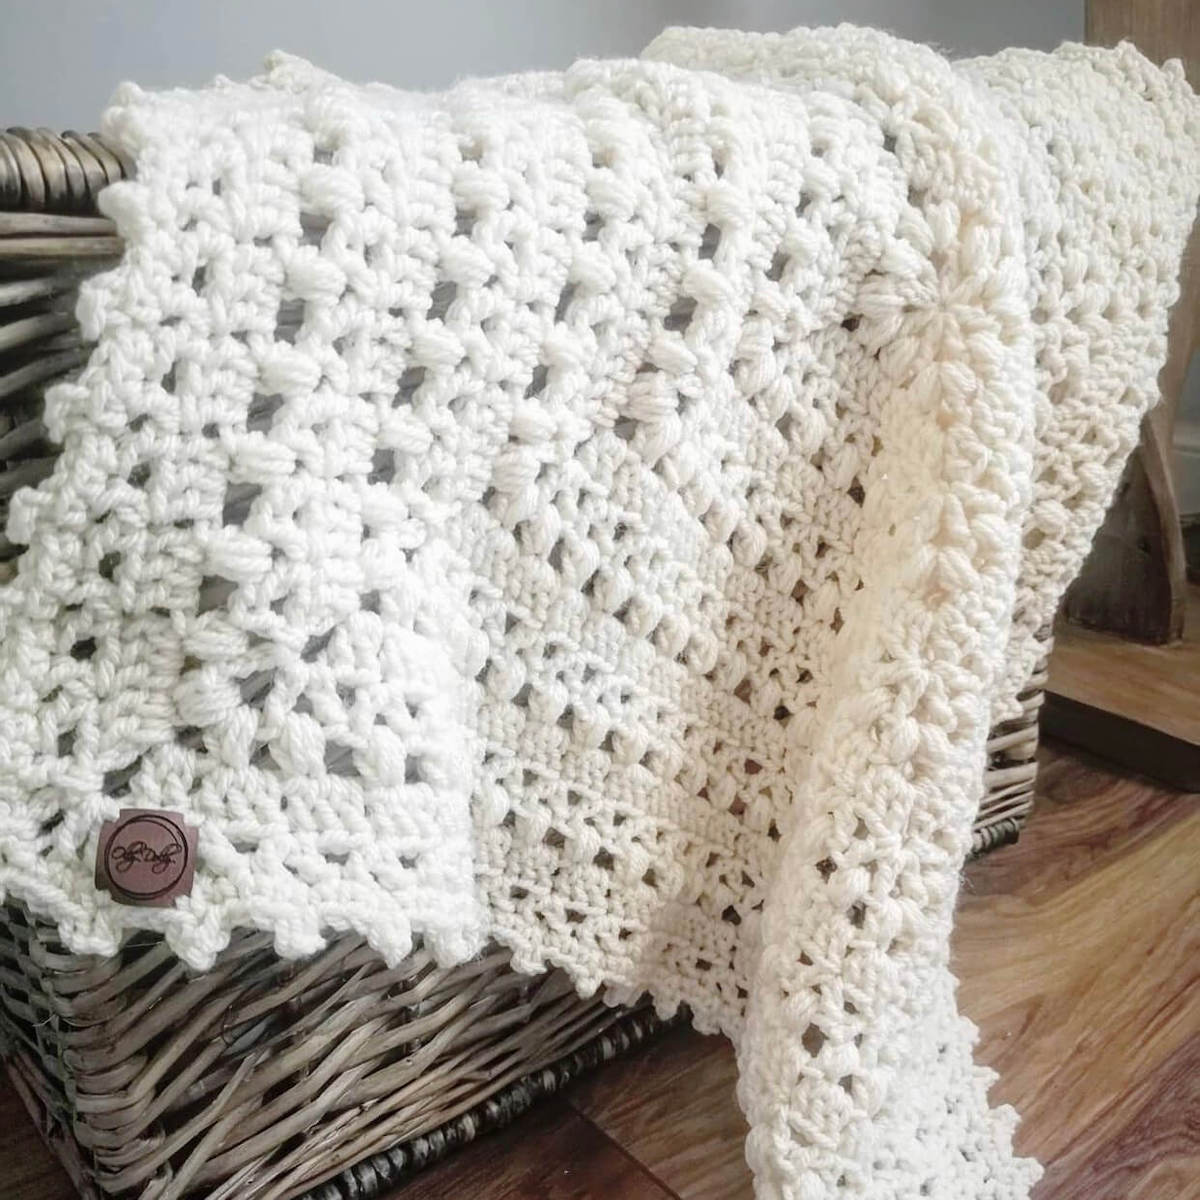 Crochet granny square baby blanket made by ollydolly_stitch - free crochet pattern by Wilmade